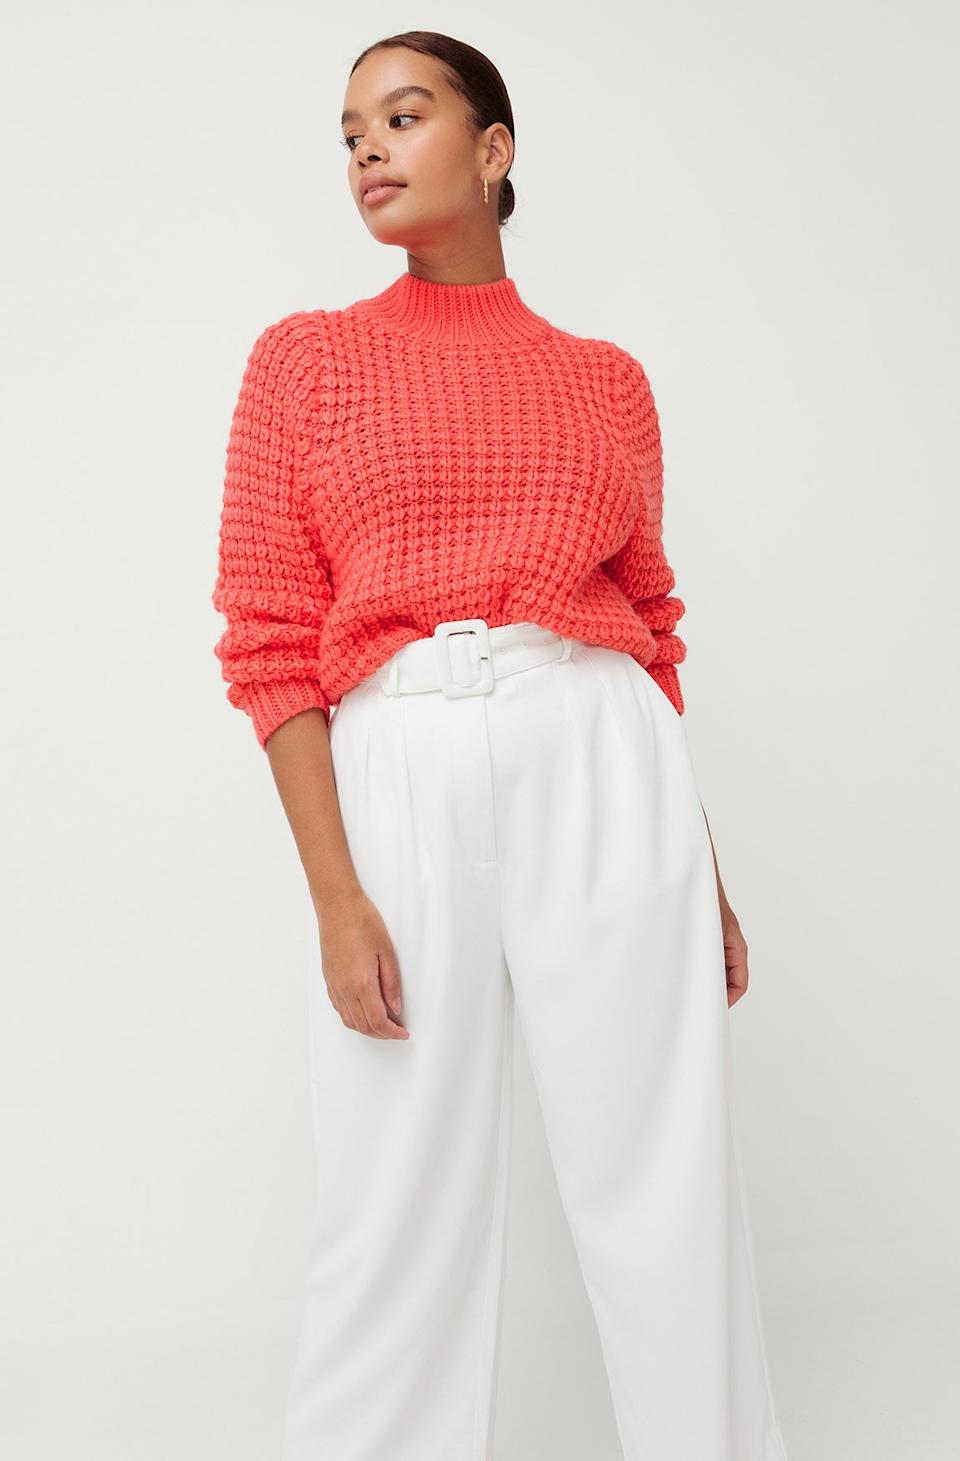 Promises Knit Jumper. Now $49, down from $99.95